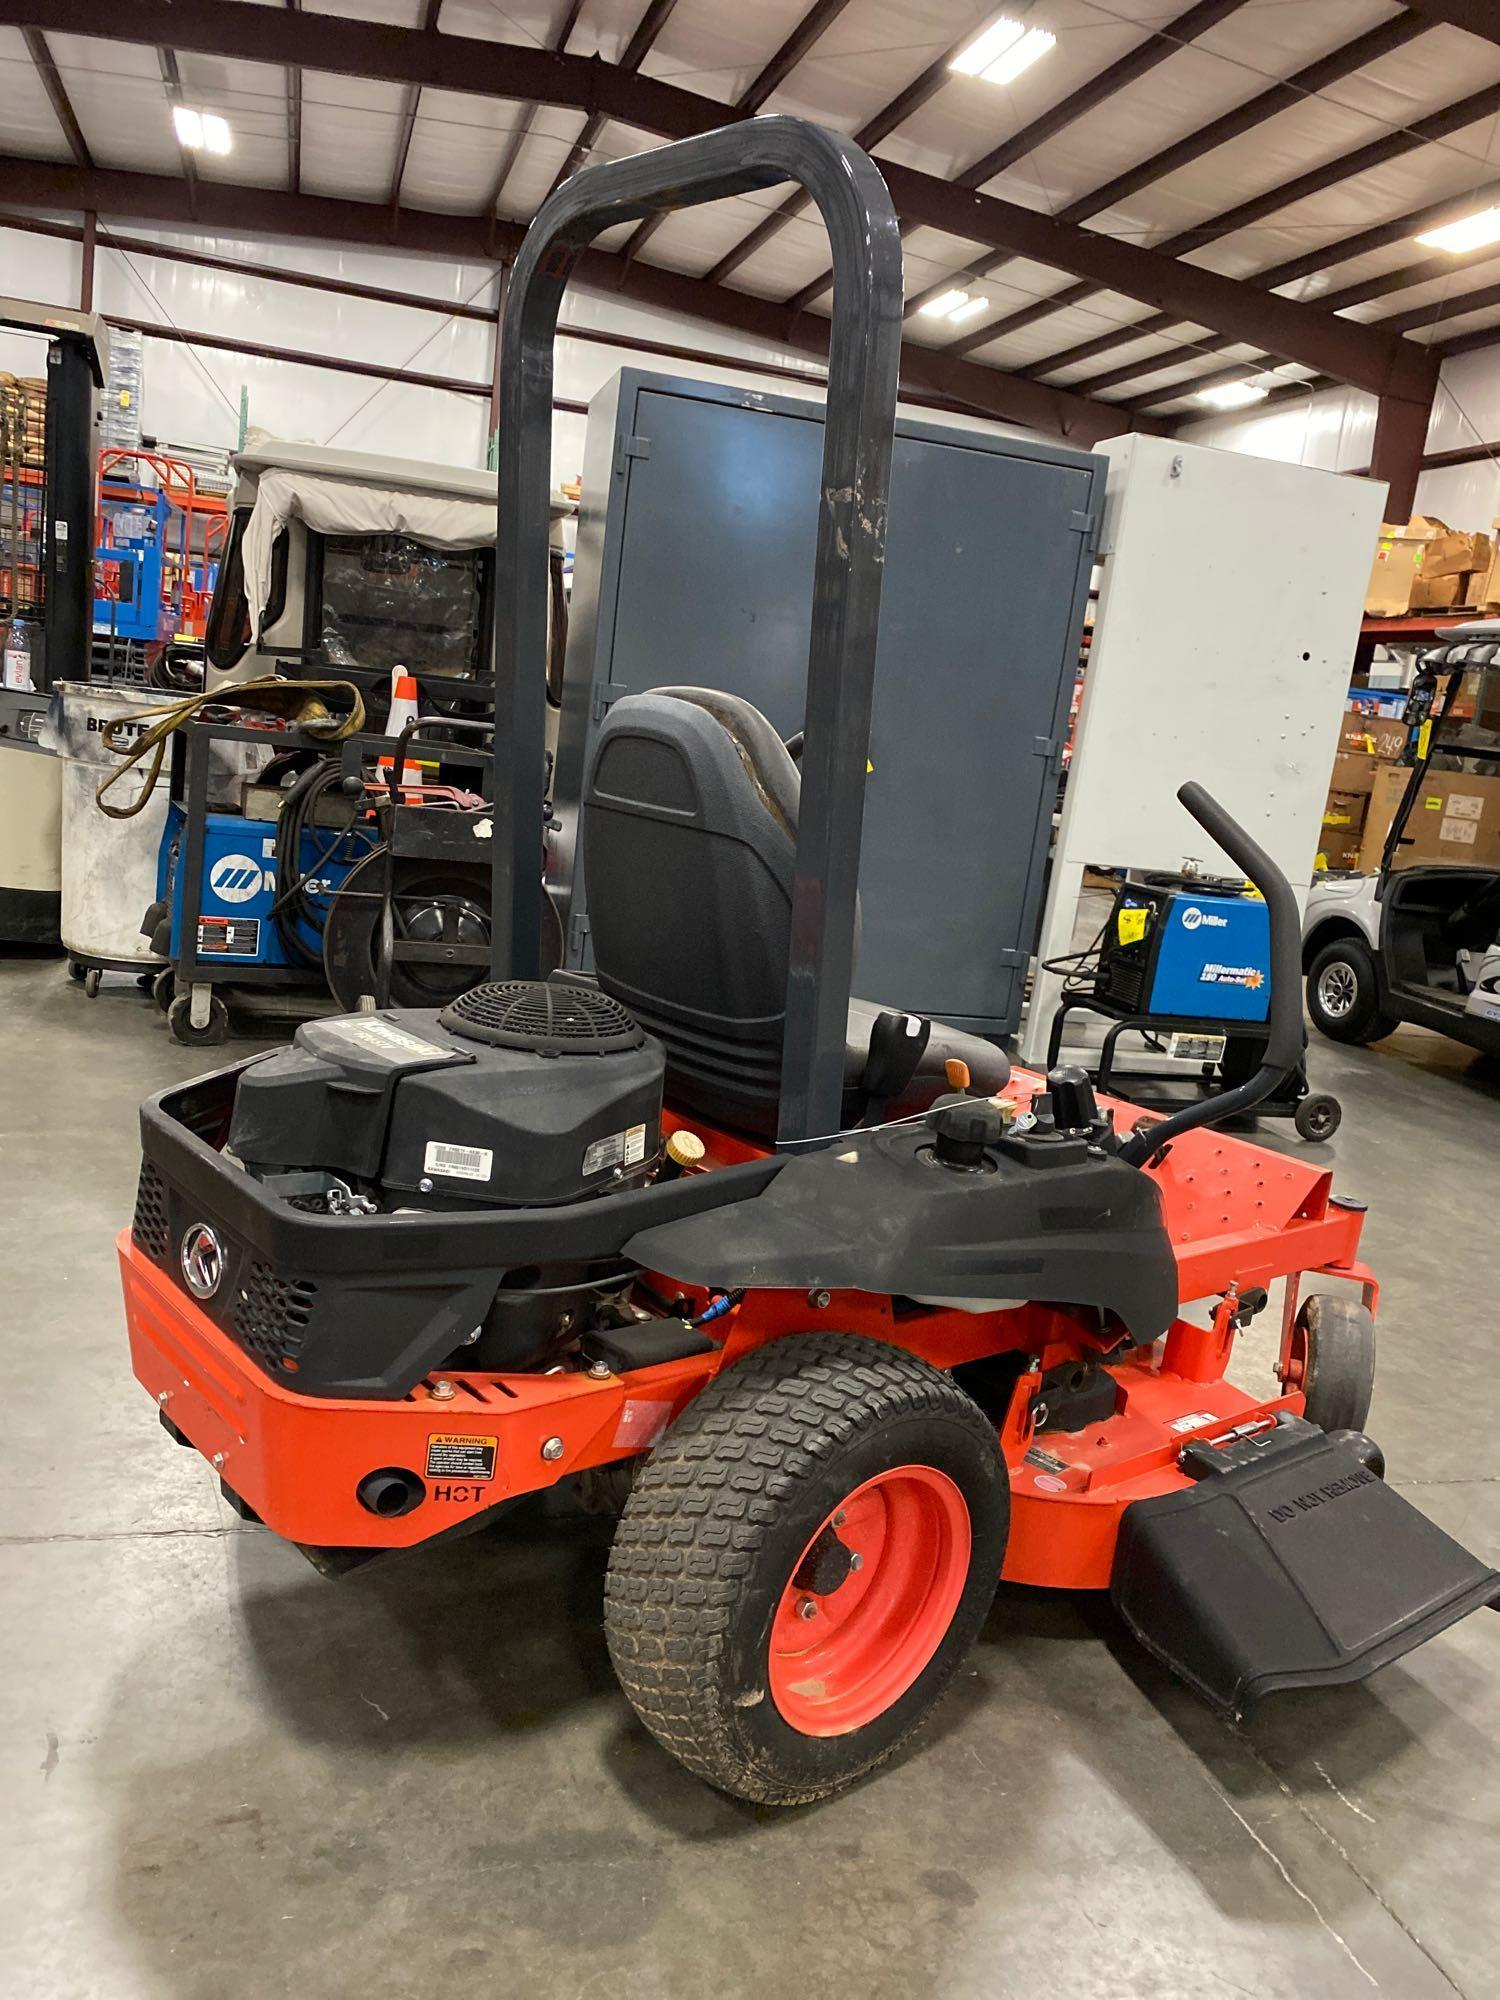 """2016 KUBOTA Z122RKW 42"""" RIDE ON MOWER, 3.9 HOURS SHOWING, RUNS AND OPERATES - Image 4 of 9"""